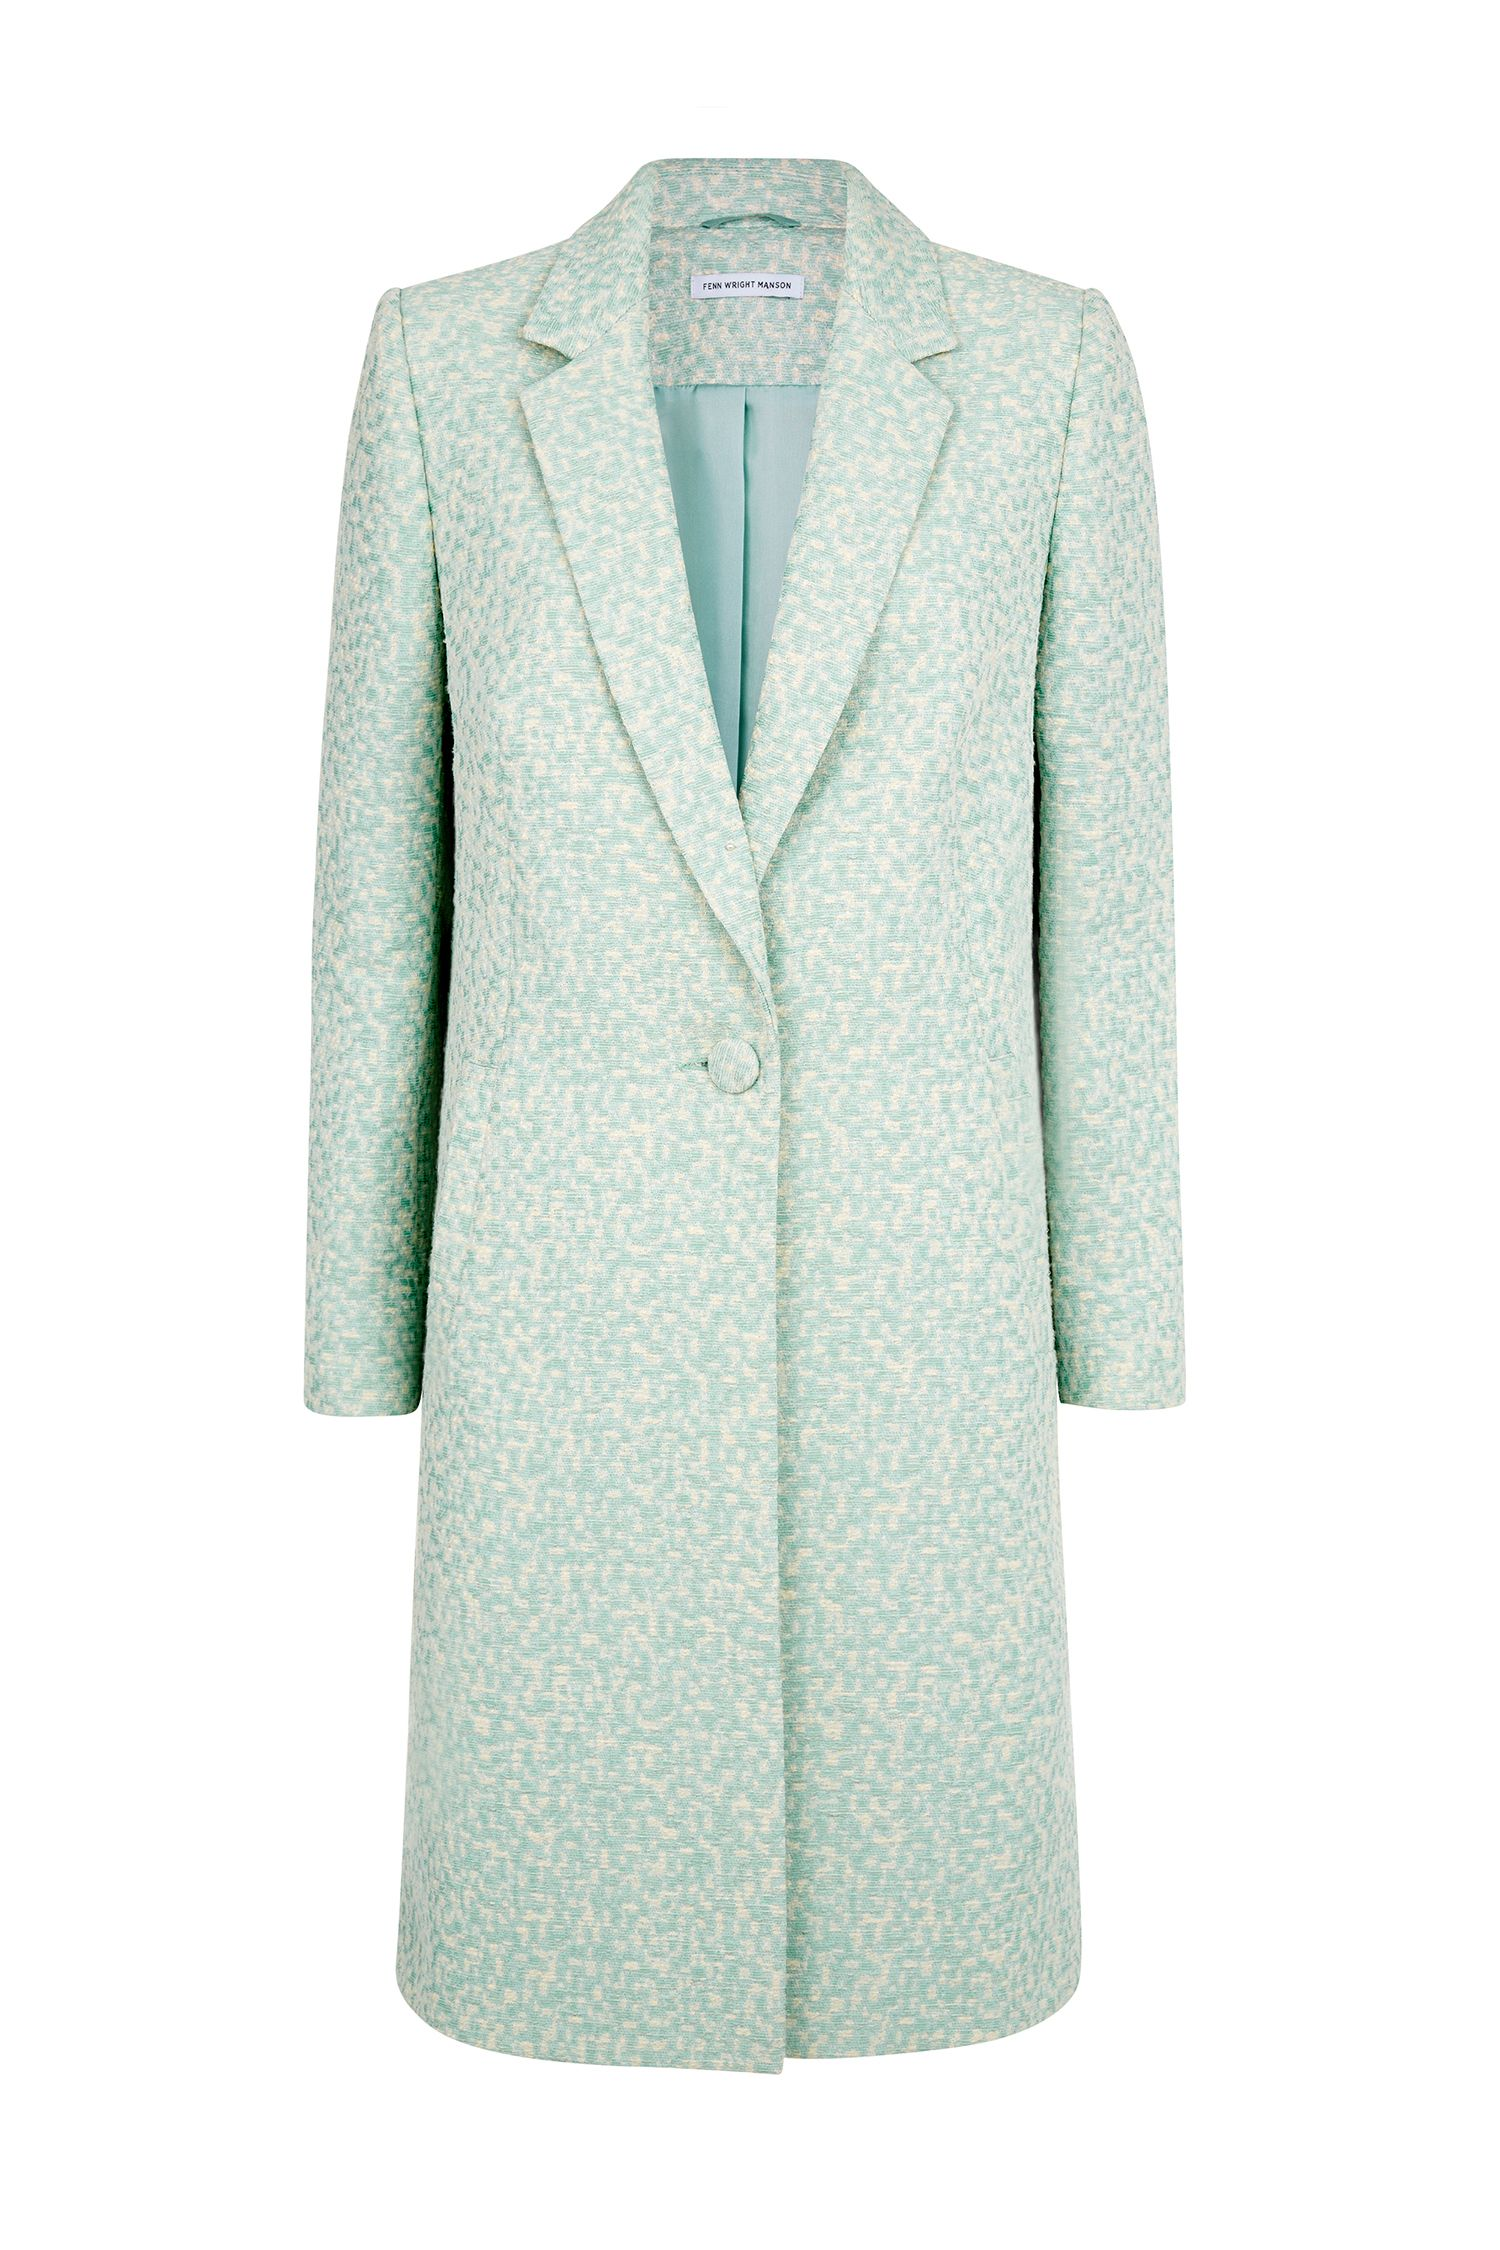 Fenn Wright Manson Lupine Coat, Blue